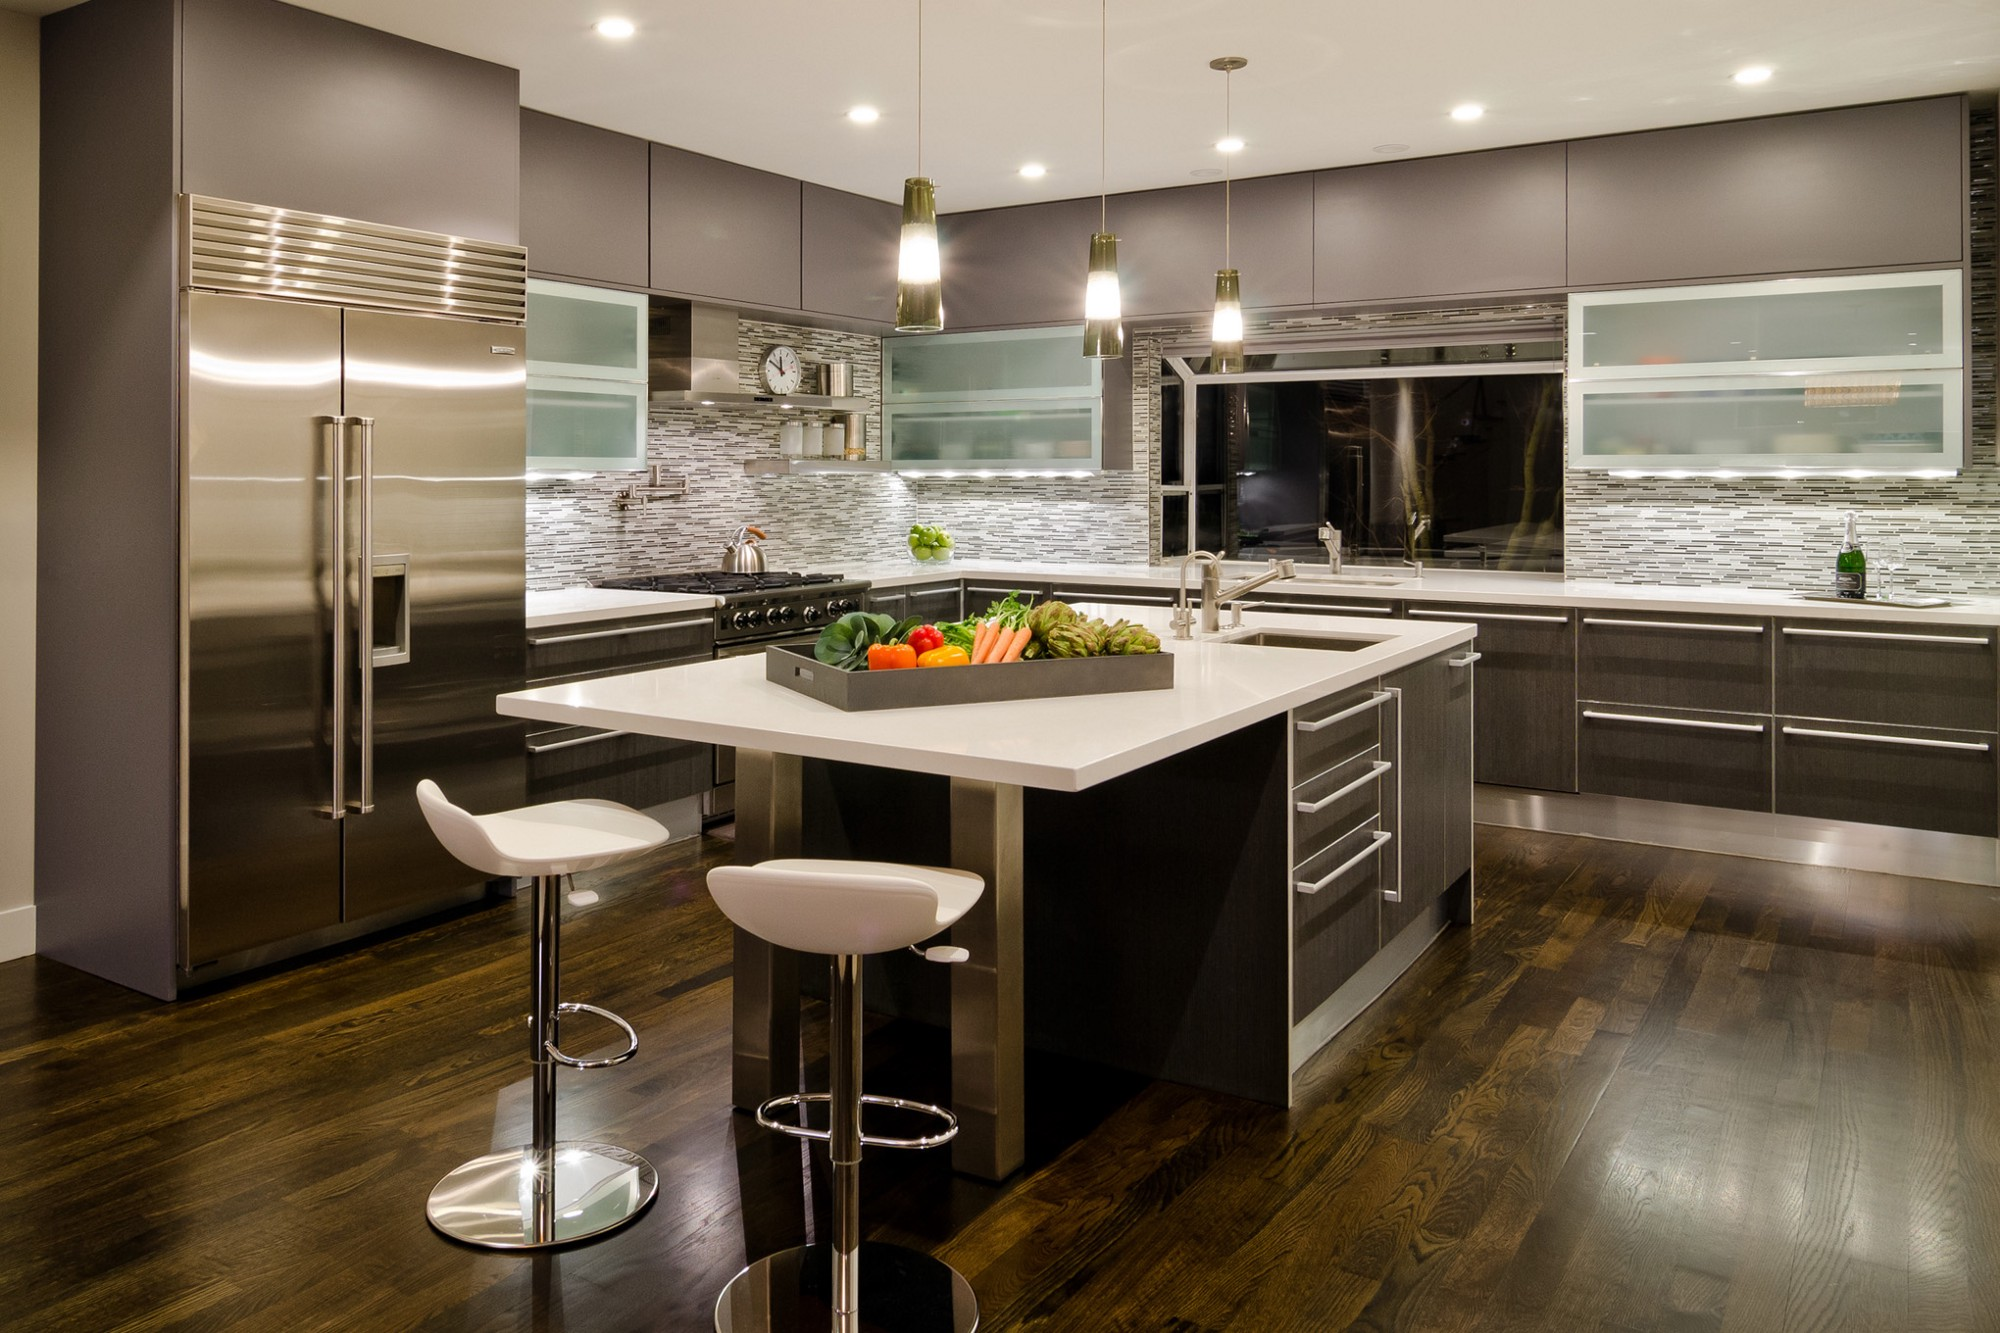 Modern Kitchen Cabinets Offer A Streamlined Look And Maximum Storage By Jenn Virskus European Cabinets Design Studios Medium